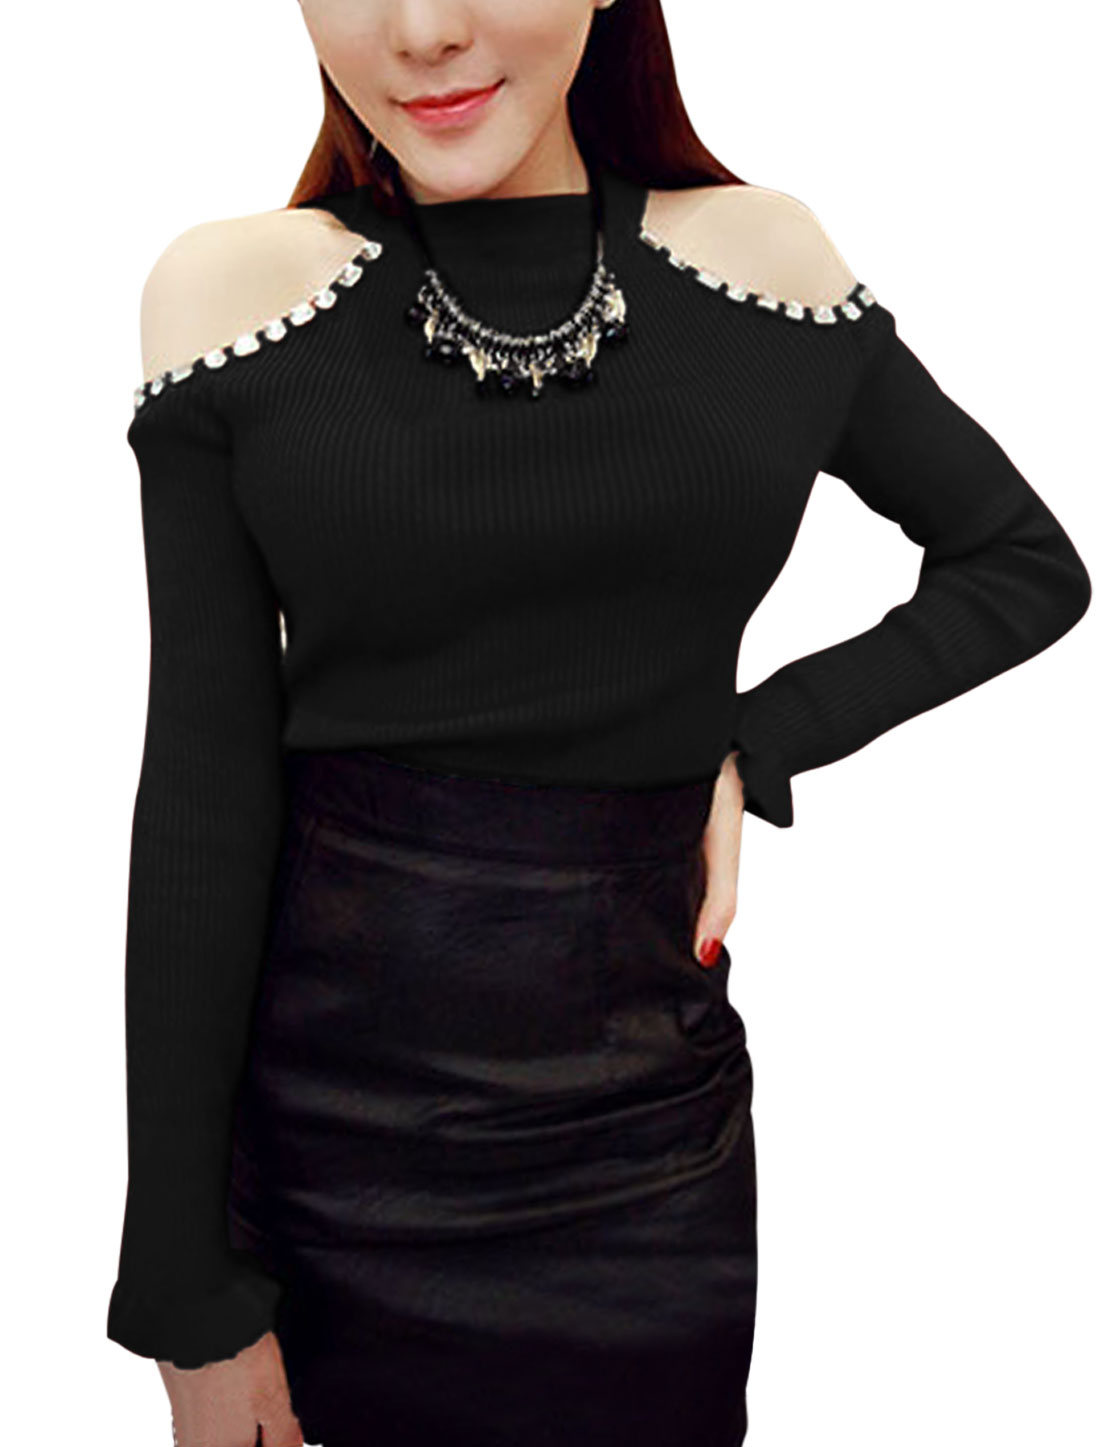 Women Cut Out Shoulder Rhinestone Decor Knit Shirt Black S